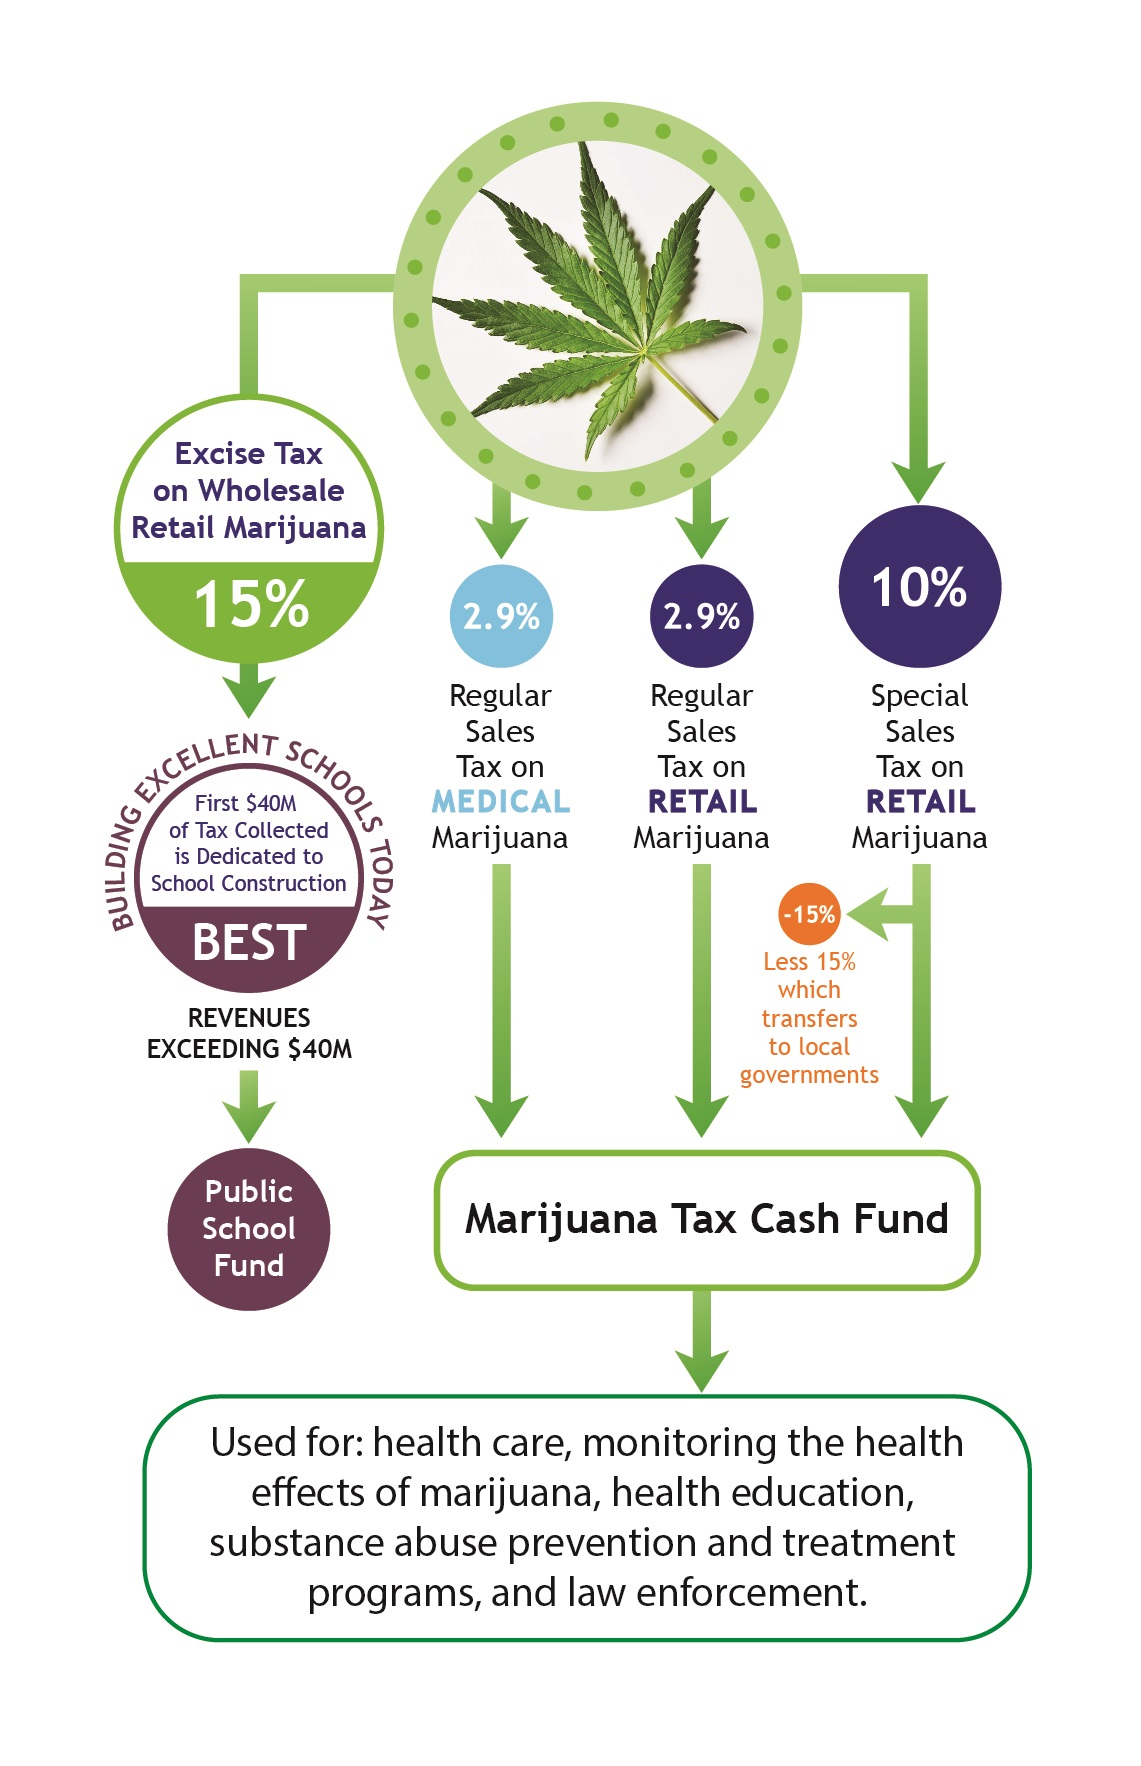 This image shows the flow of marijuana tax revenue in Colorado.